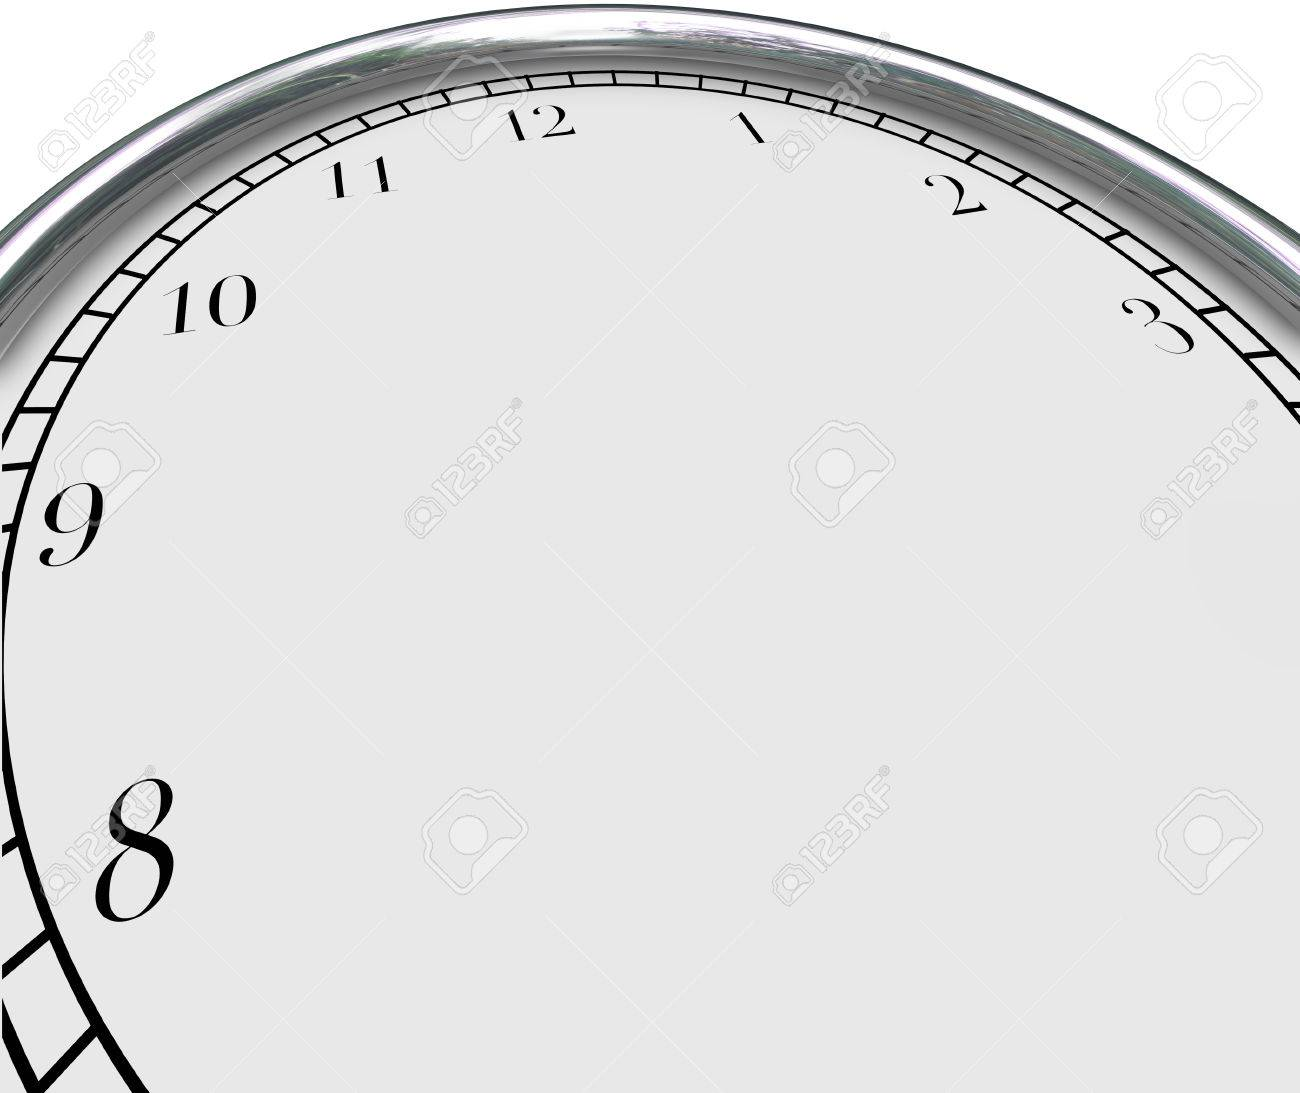 Blank clock face background to illustrate a time concept and